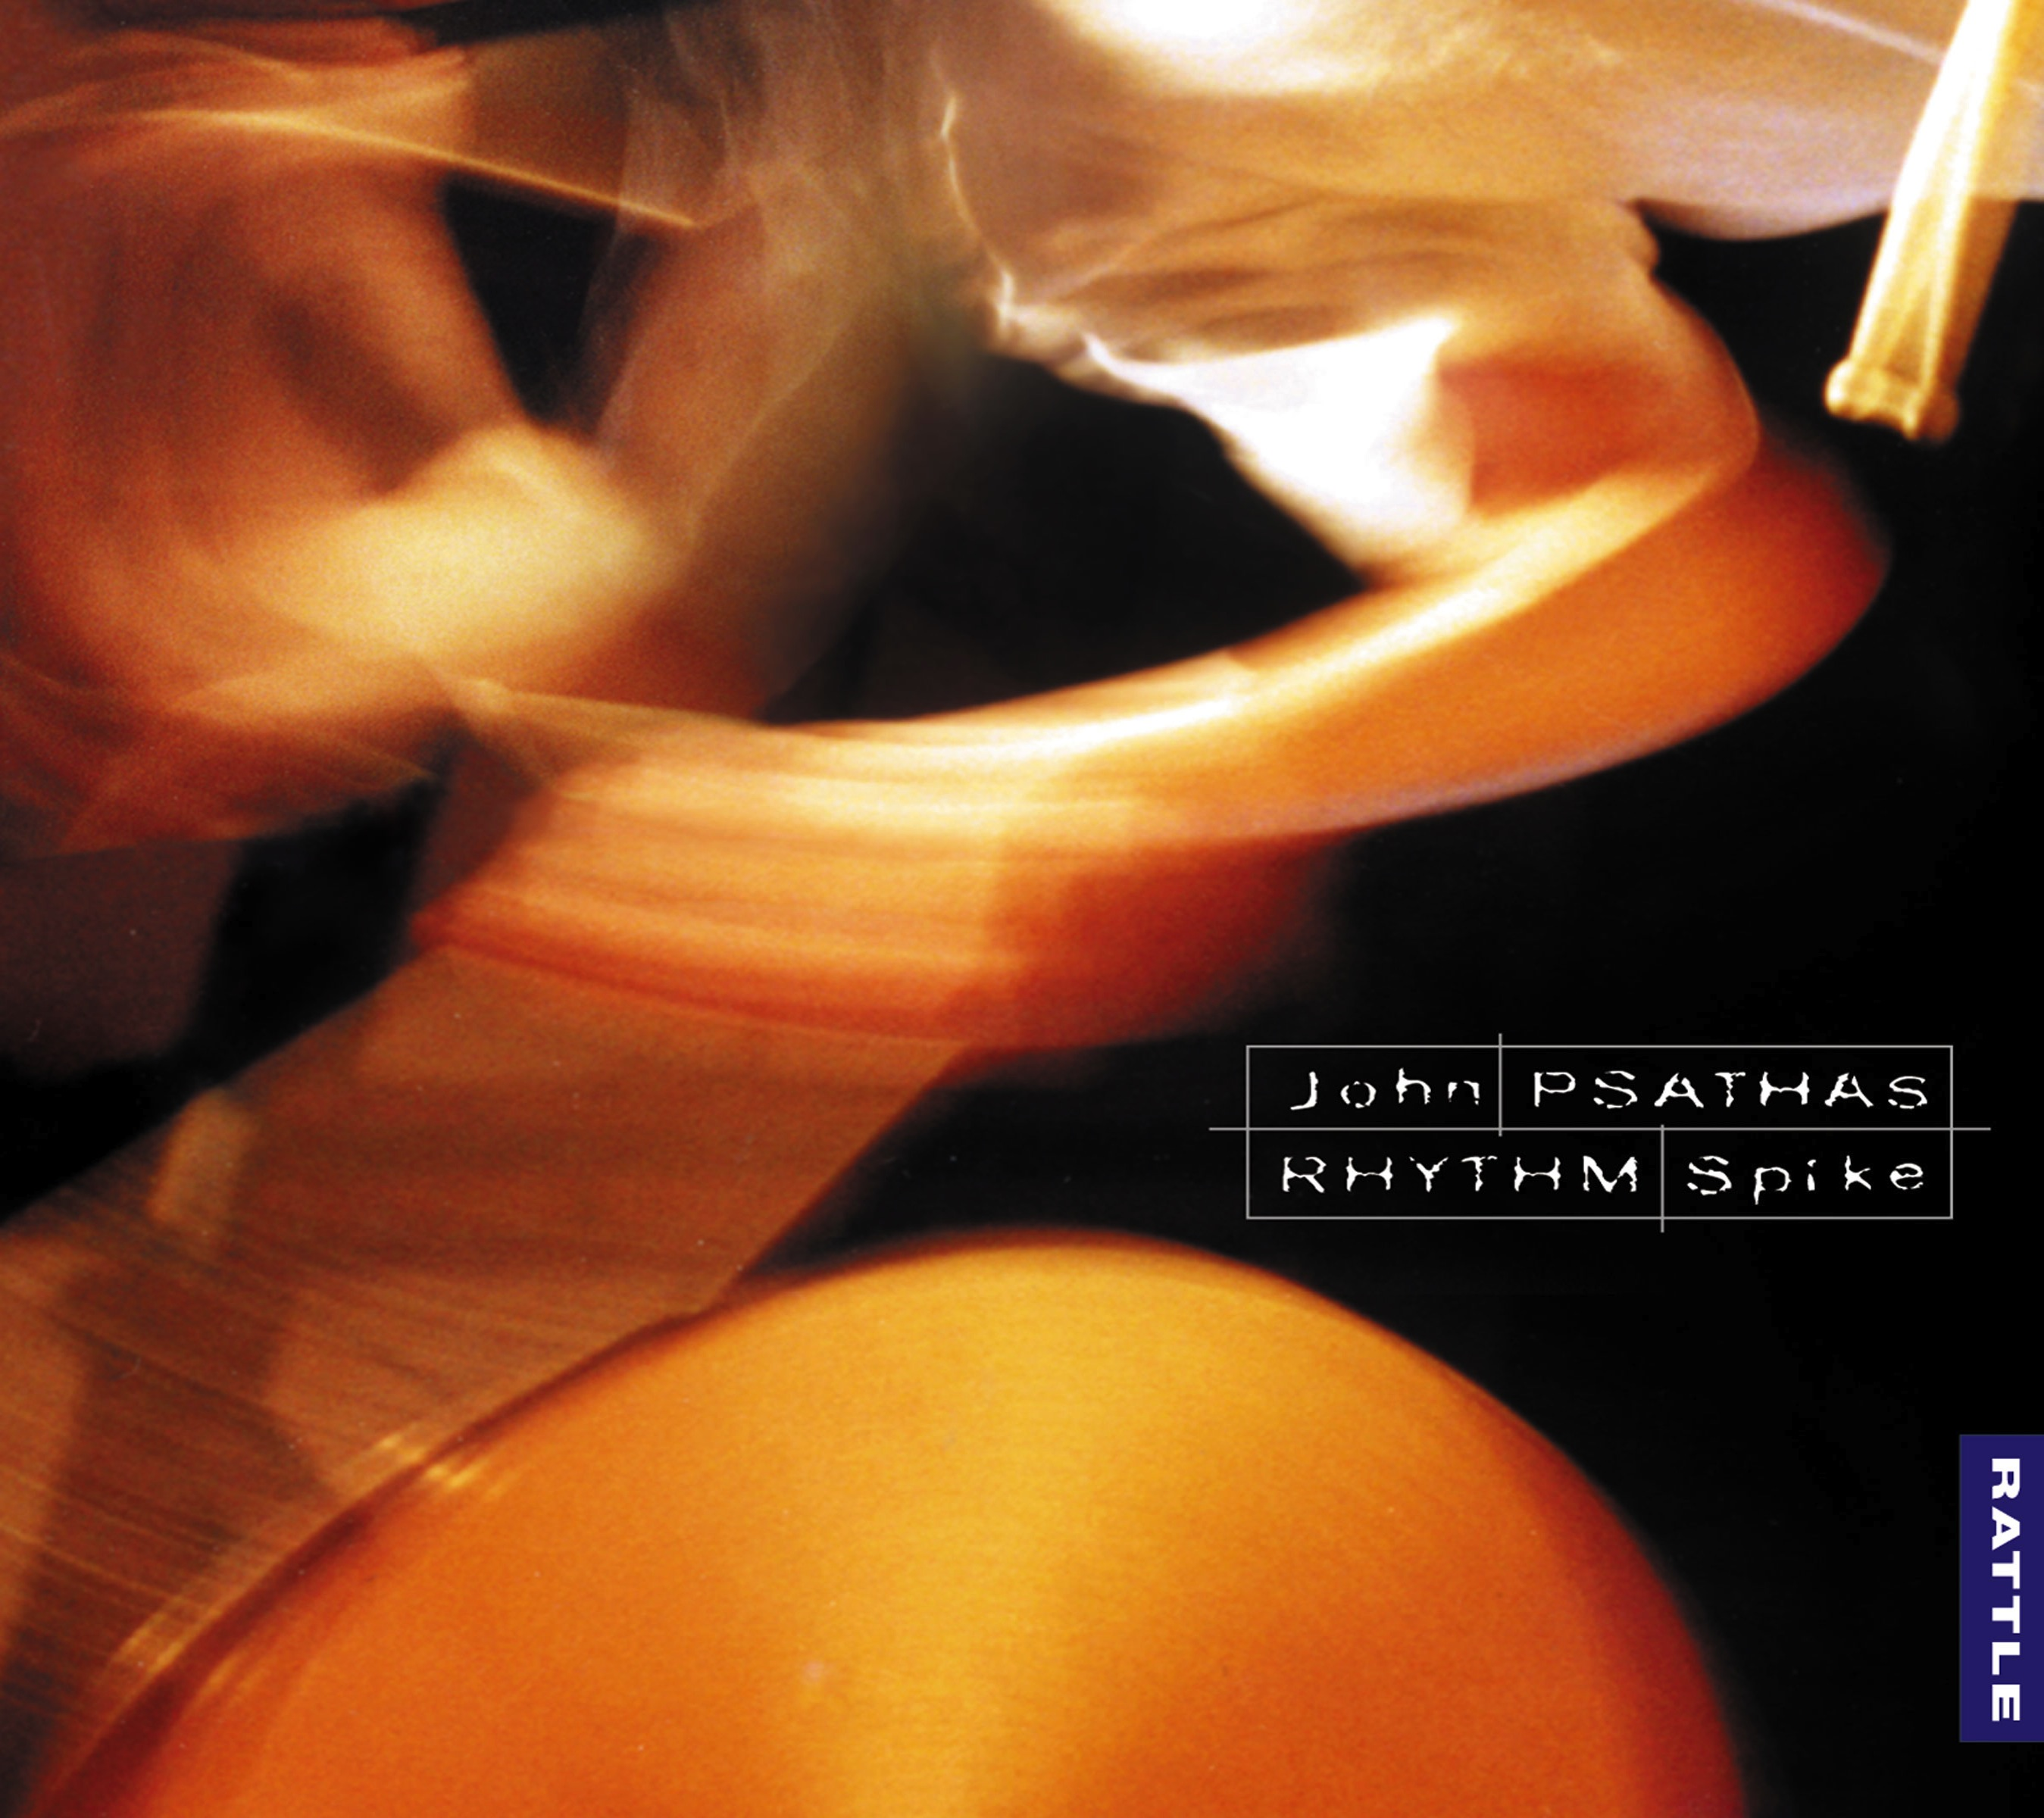 John Psathas | Rhythm Spike - downloadable MP3 ALBUM